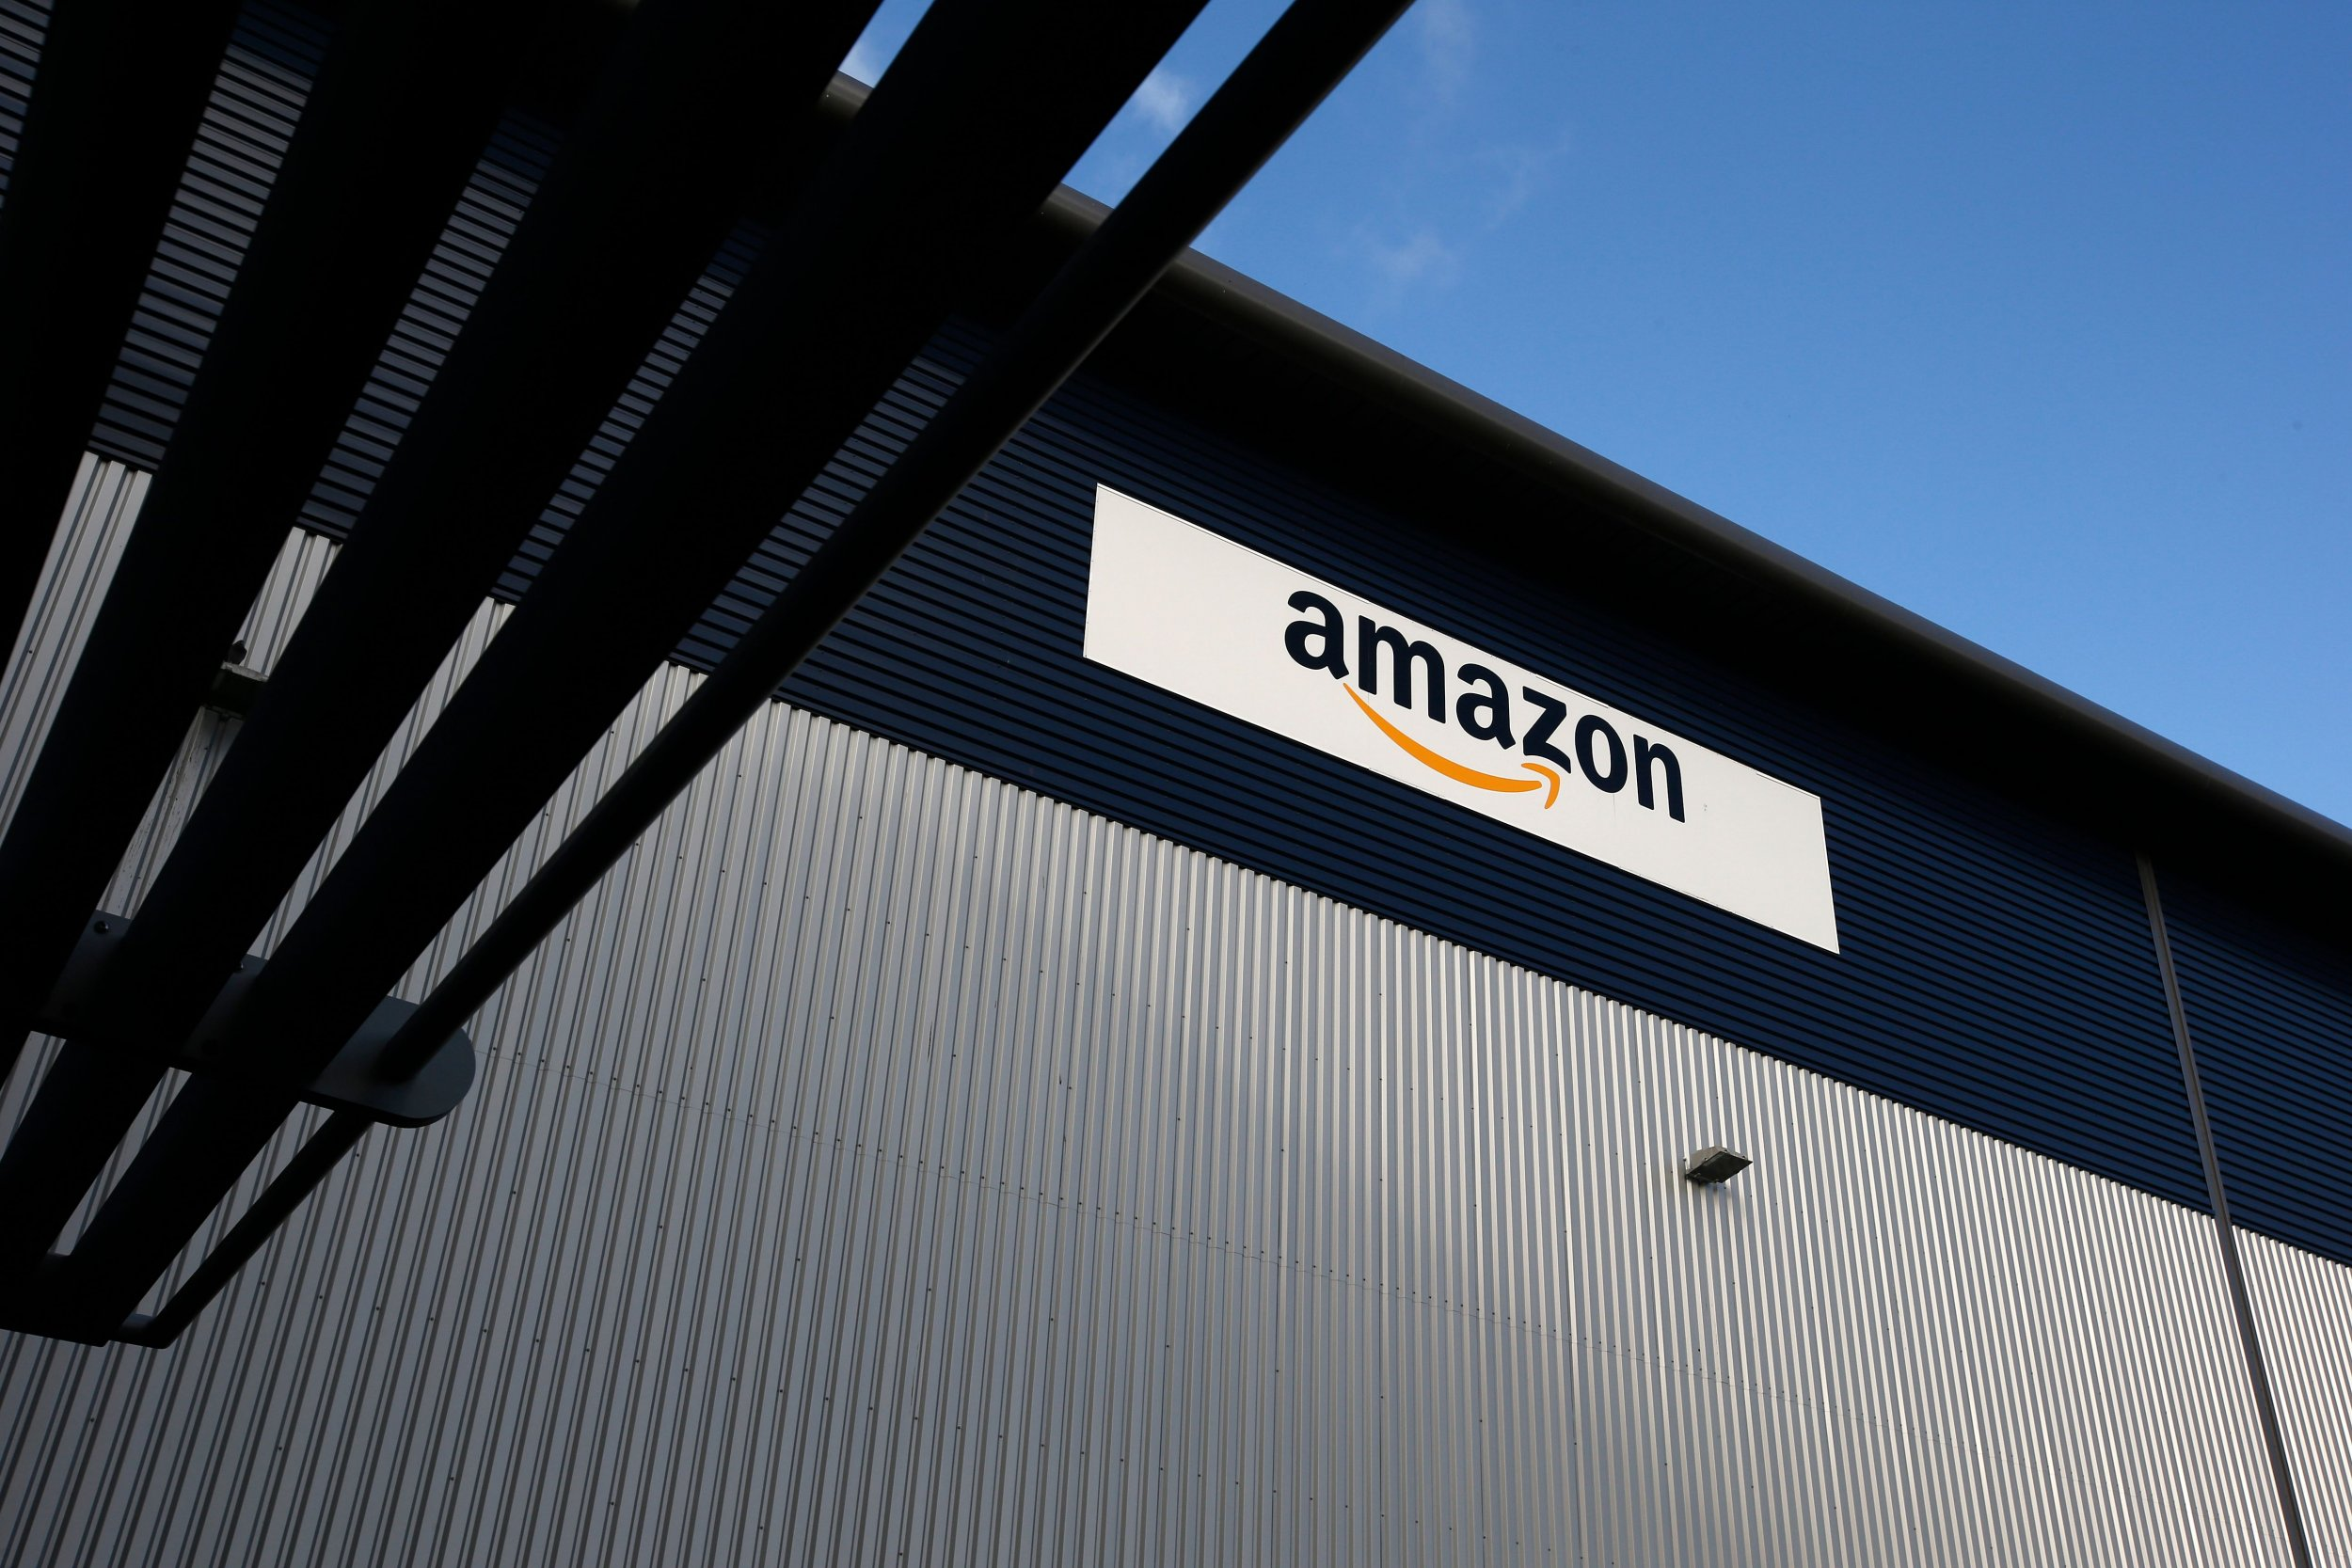 Amazon Working Conditions: Urinating in Trash Cans, Shamed